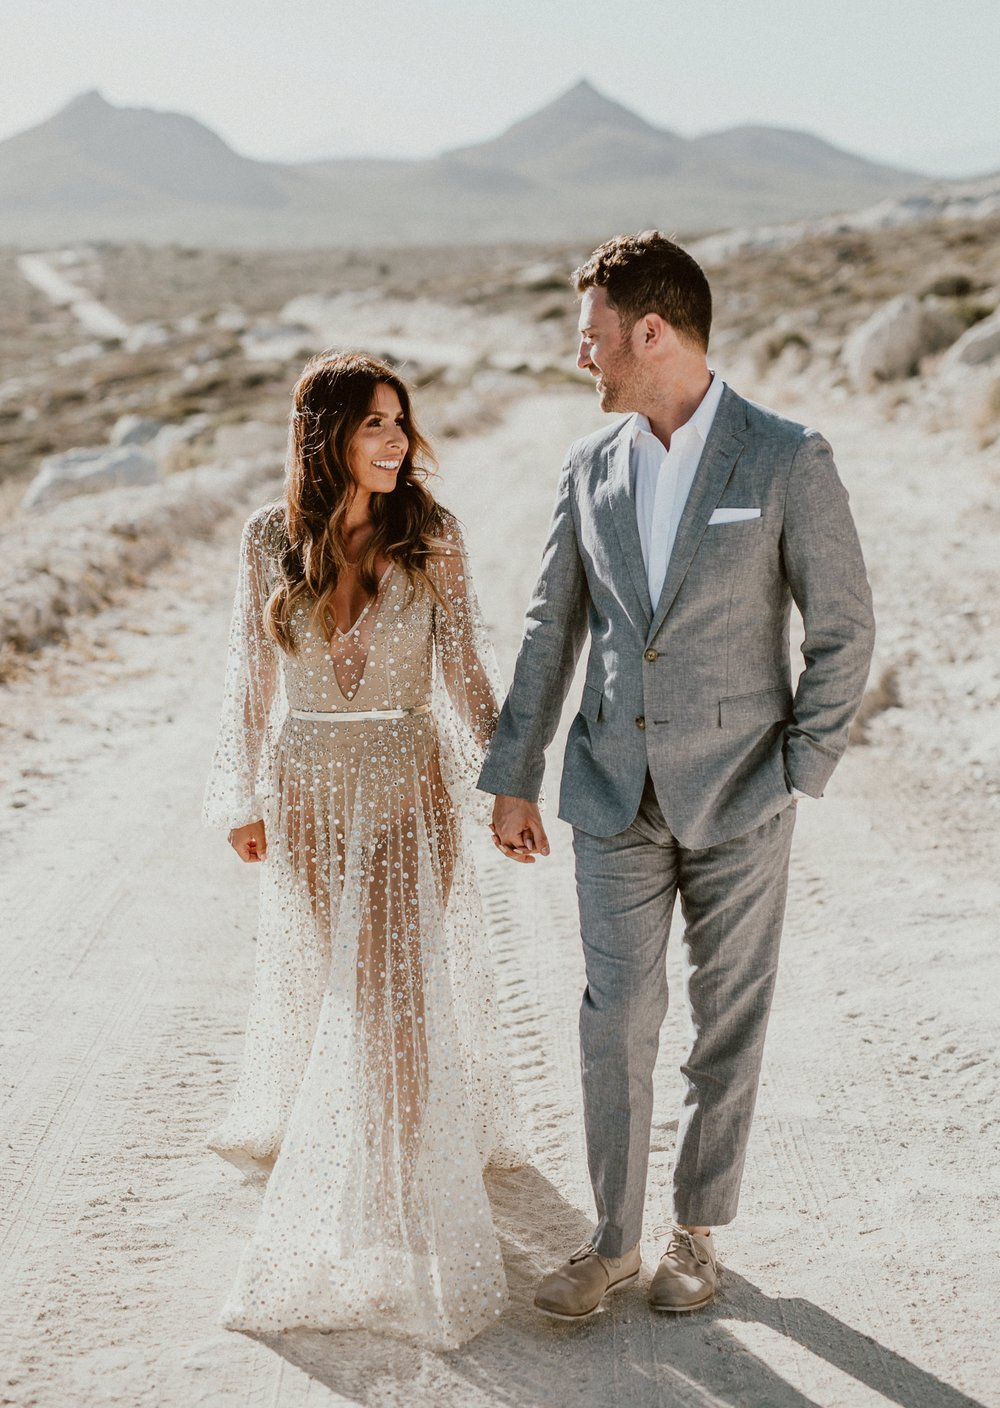 Nala Dress by Chosen by One Day Bridal - Post Wedding Photoshoot in Los Cabos, Mexico | Everyday Pursuits Ashley + Andy